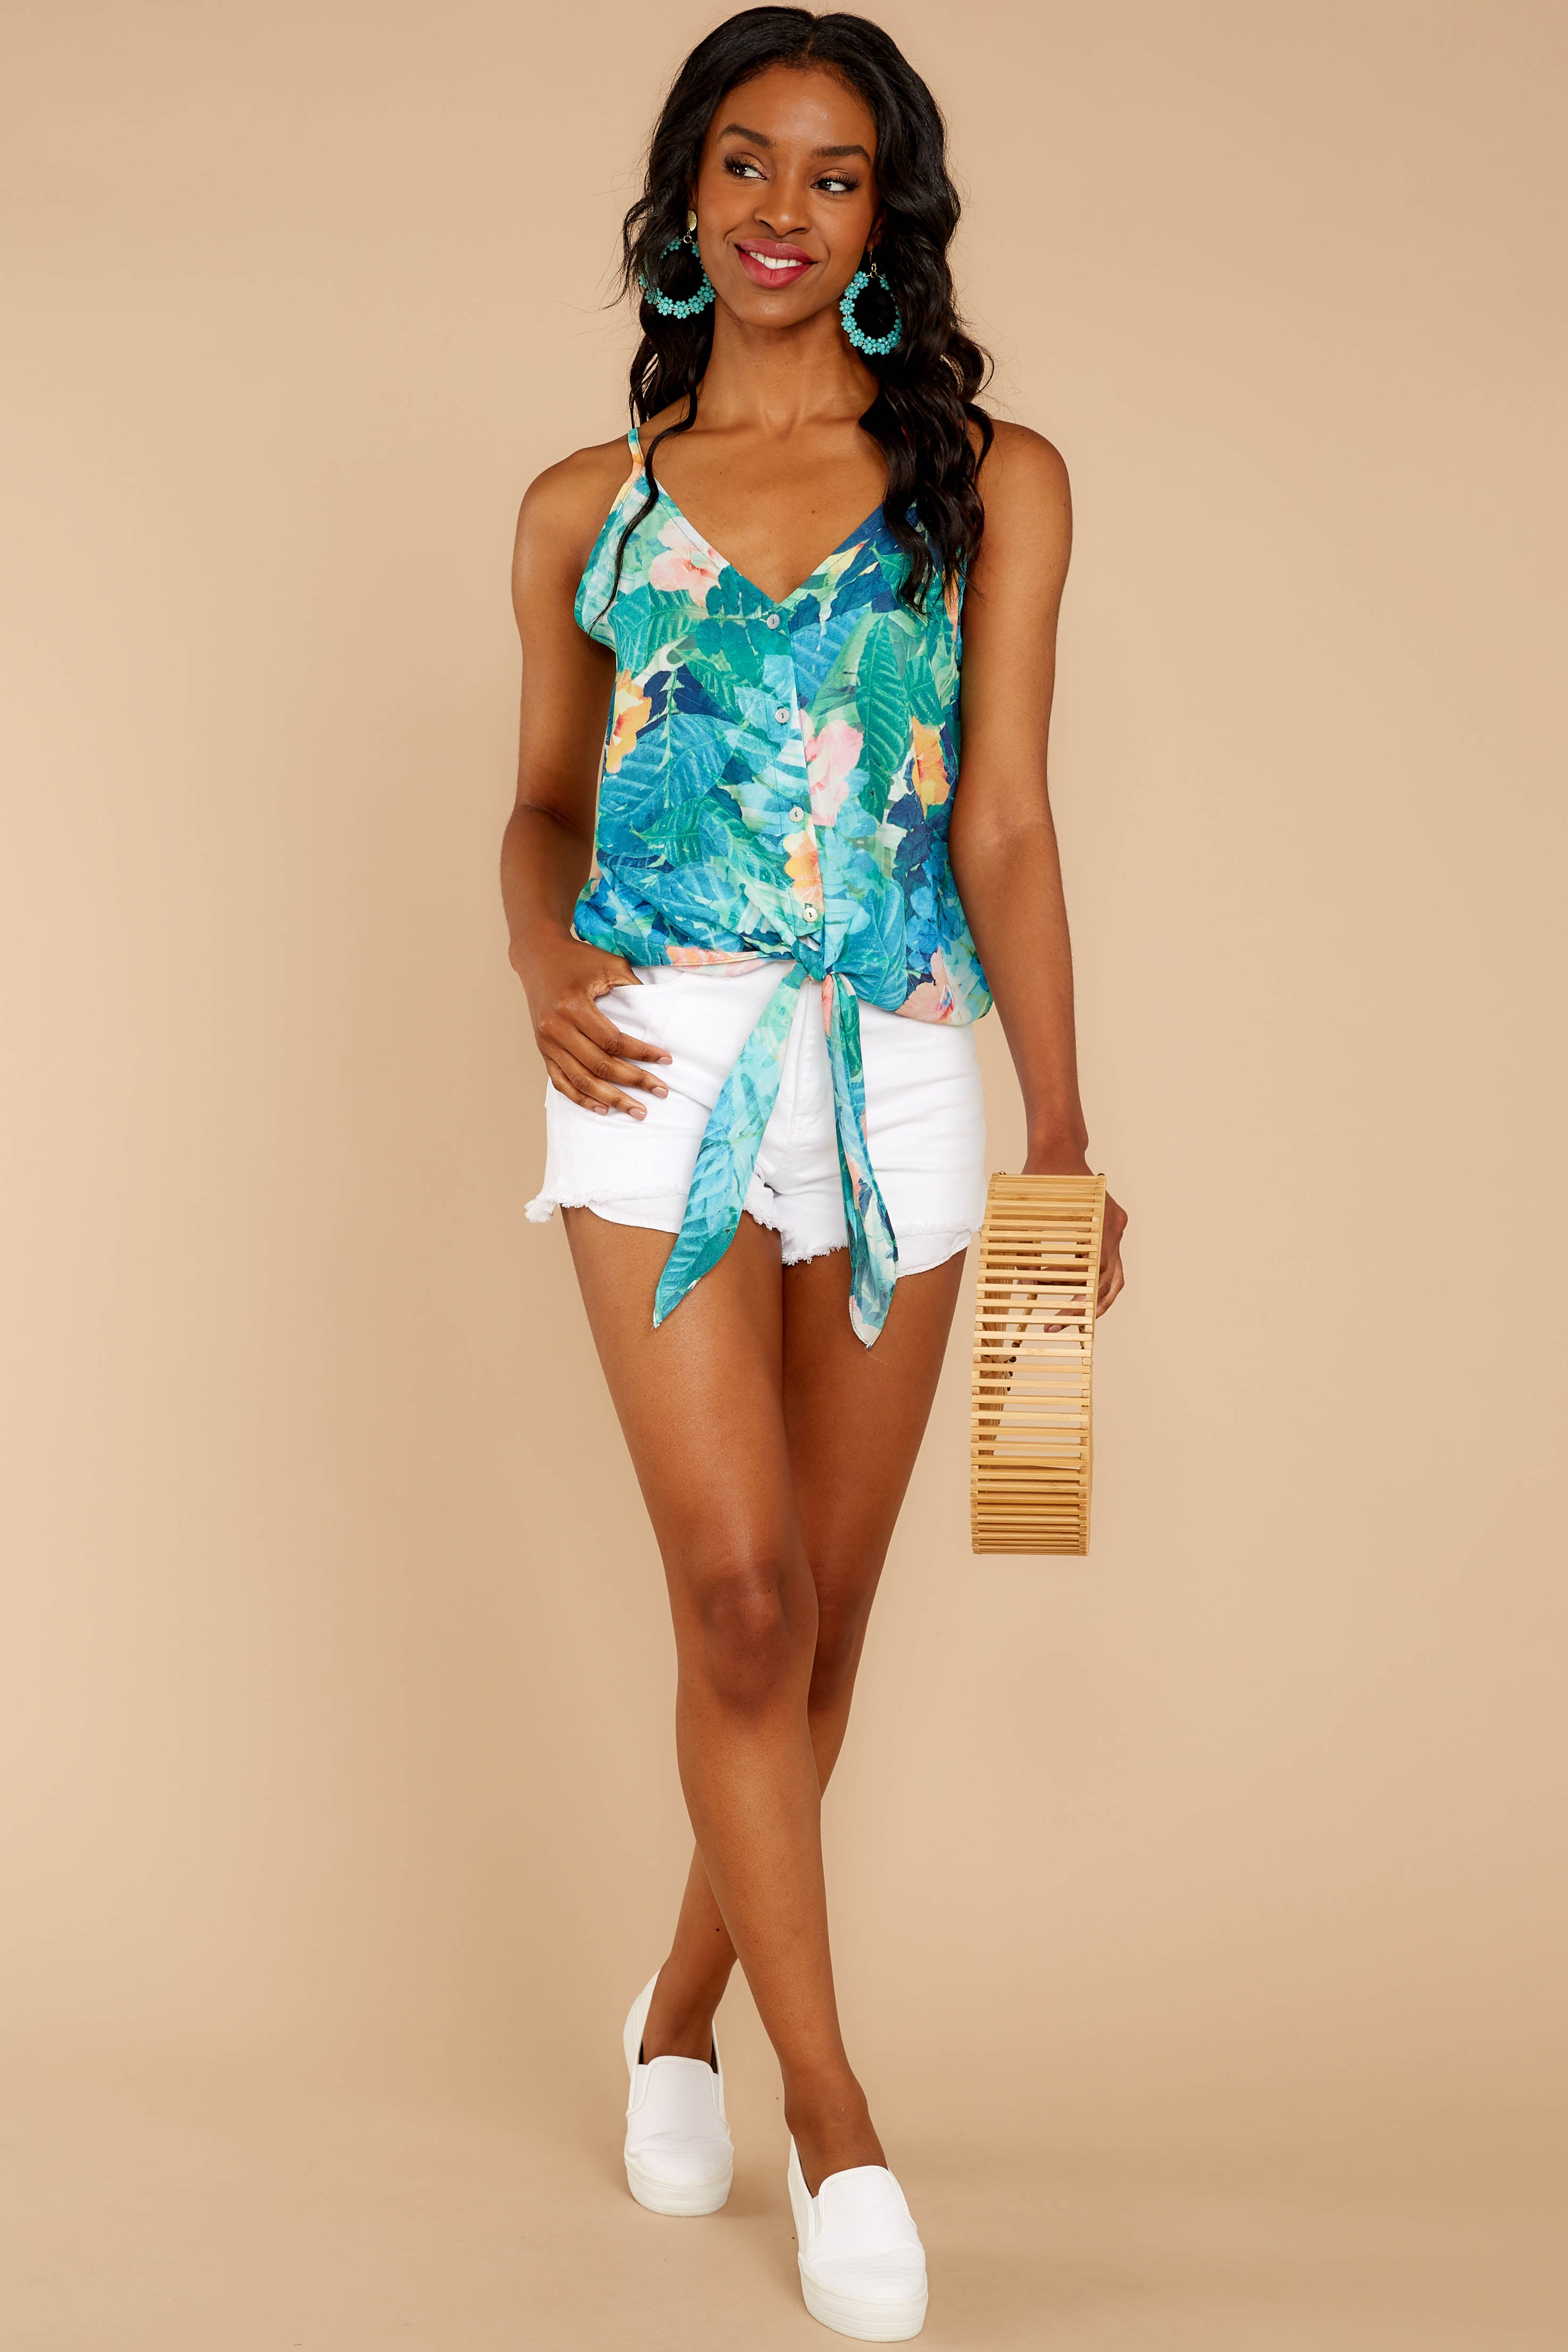 2 Knot For Now Turquoise Floral Print Tie Tank Top at reddressboutique.com